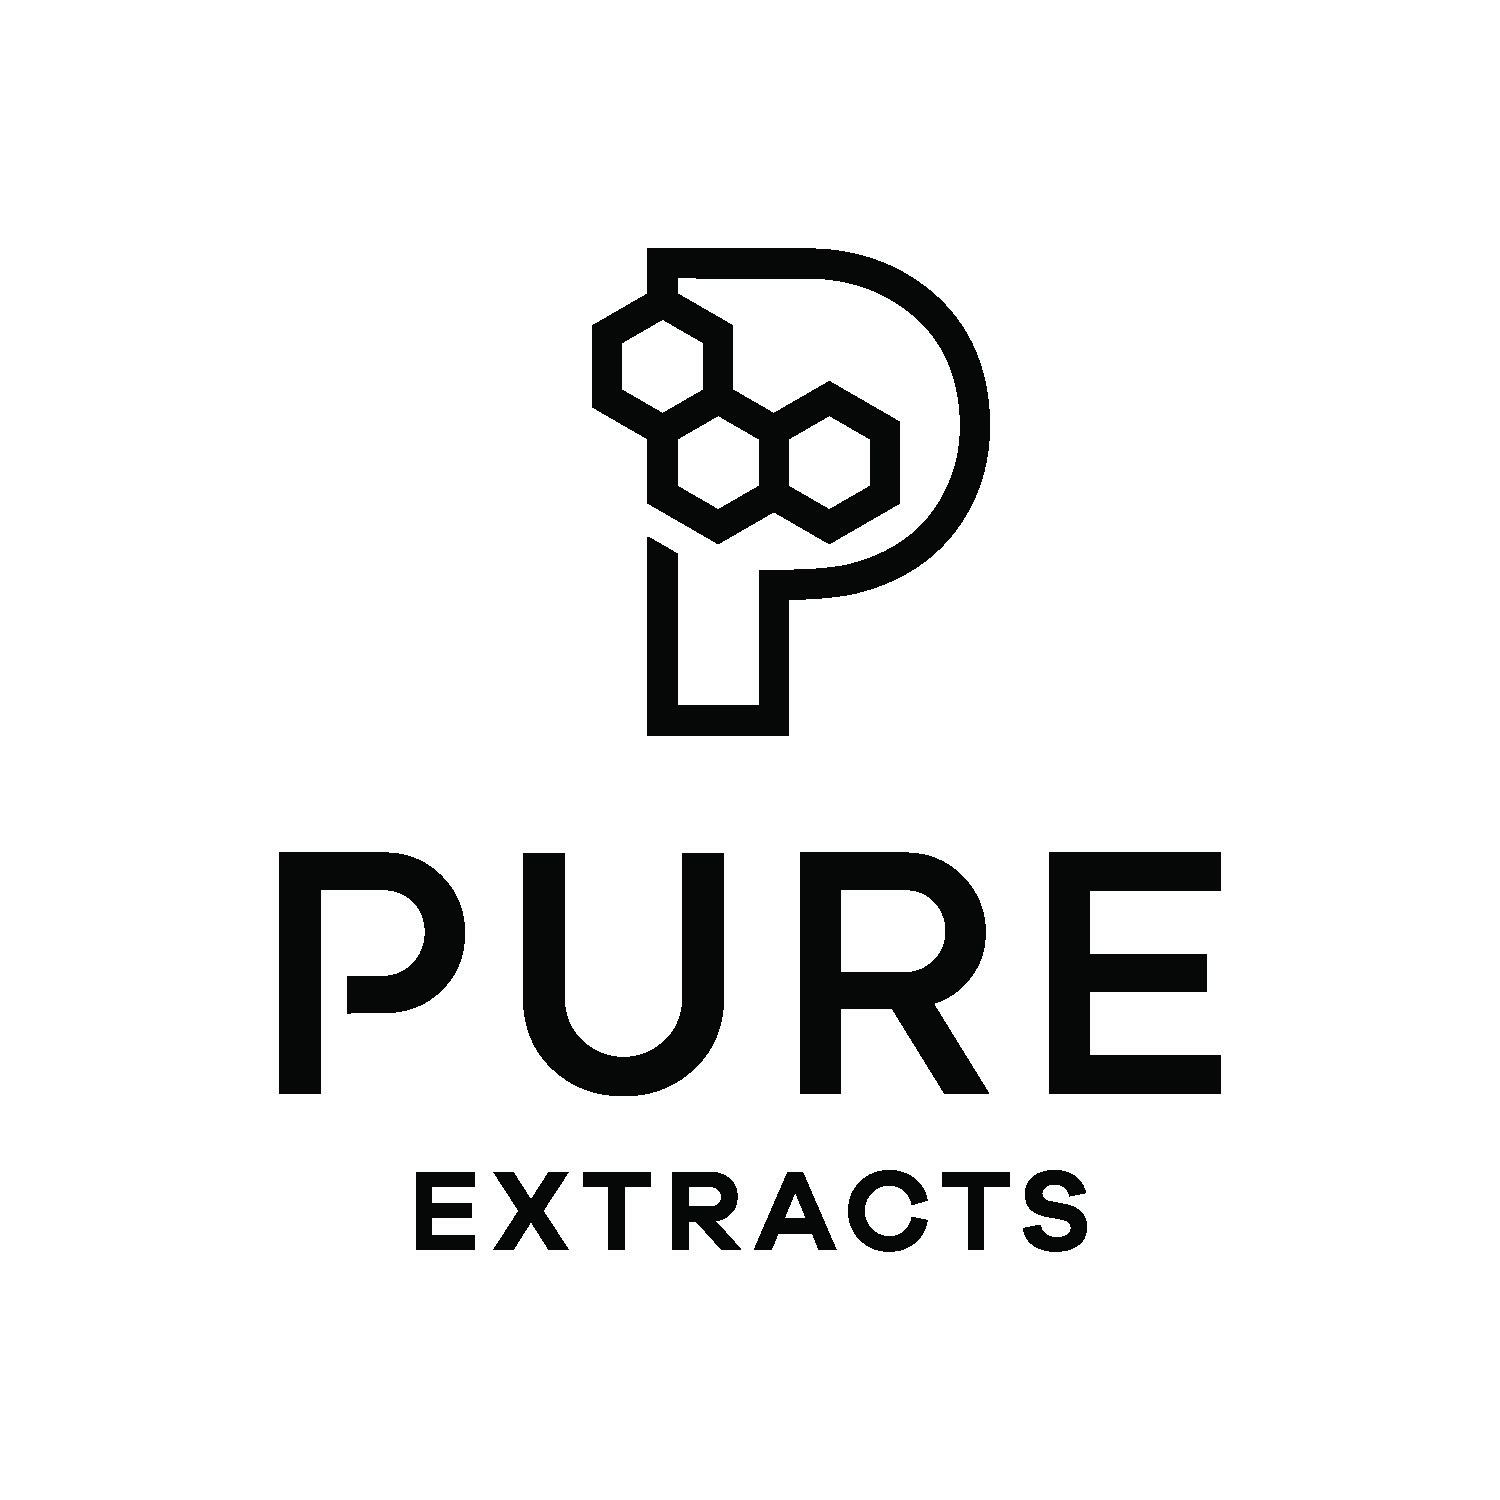 REPEAT - Pure Extracts Commences Study on Psilocybin Oral Tablets, Capsules and Nasal Gel